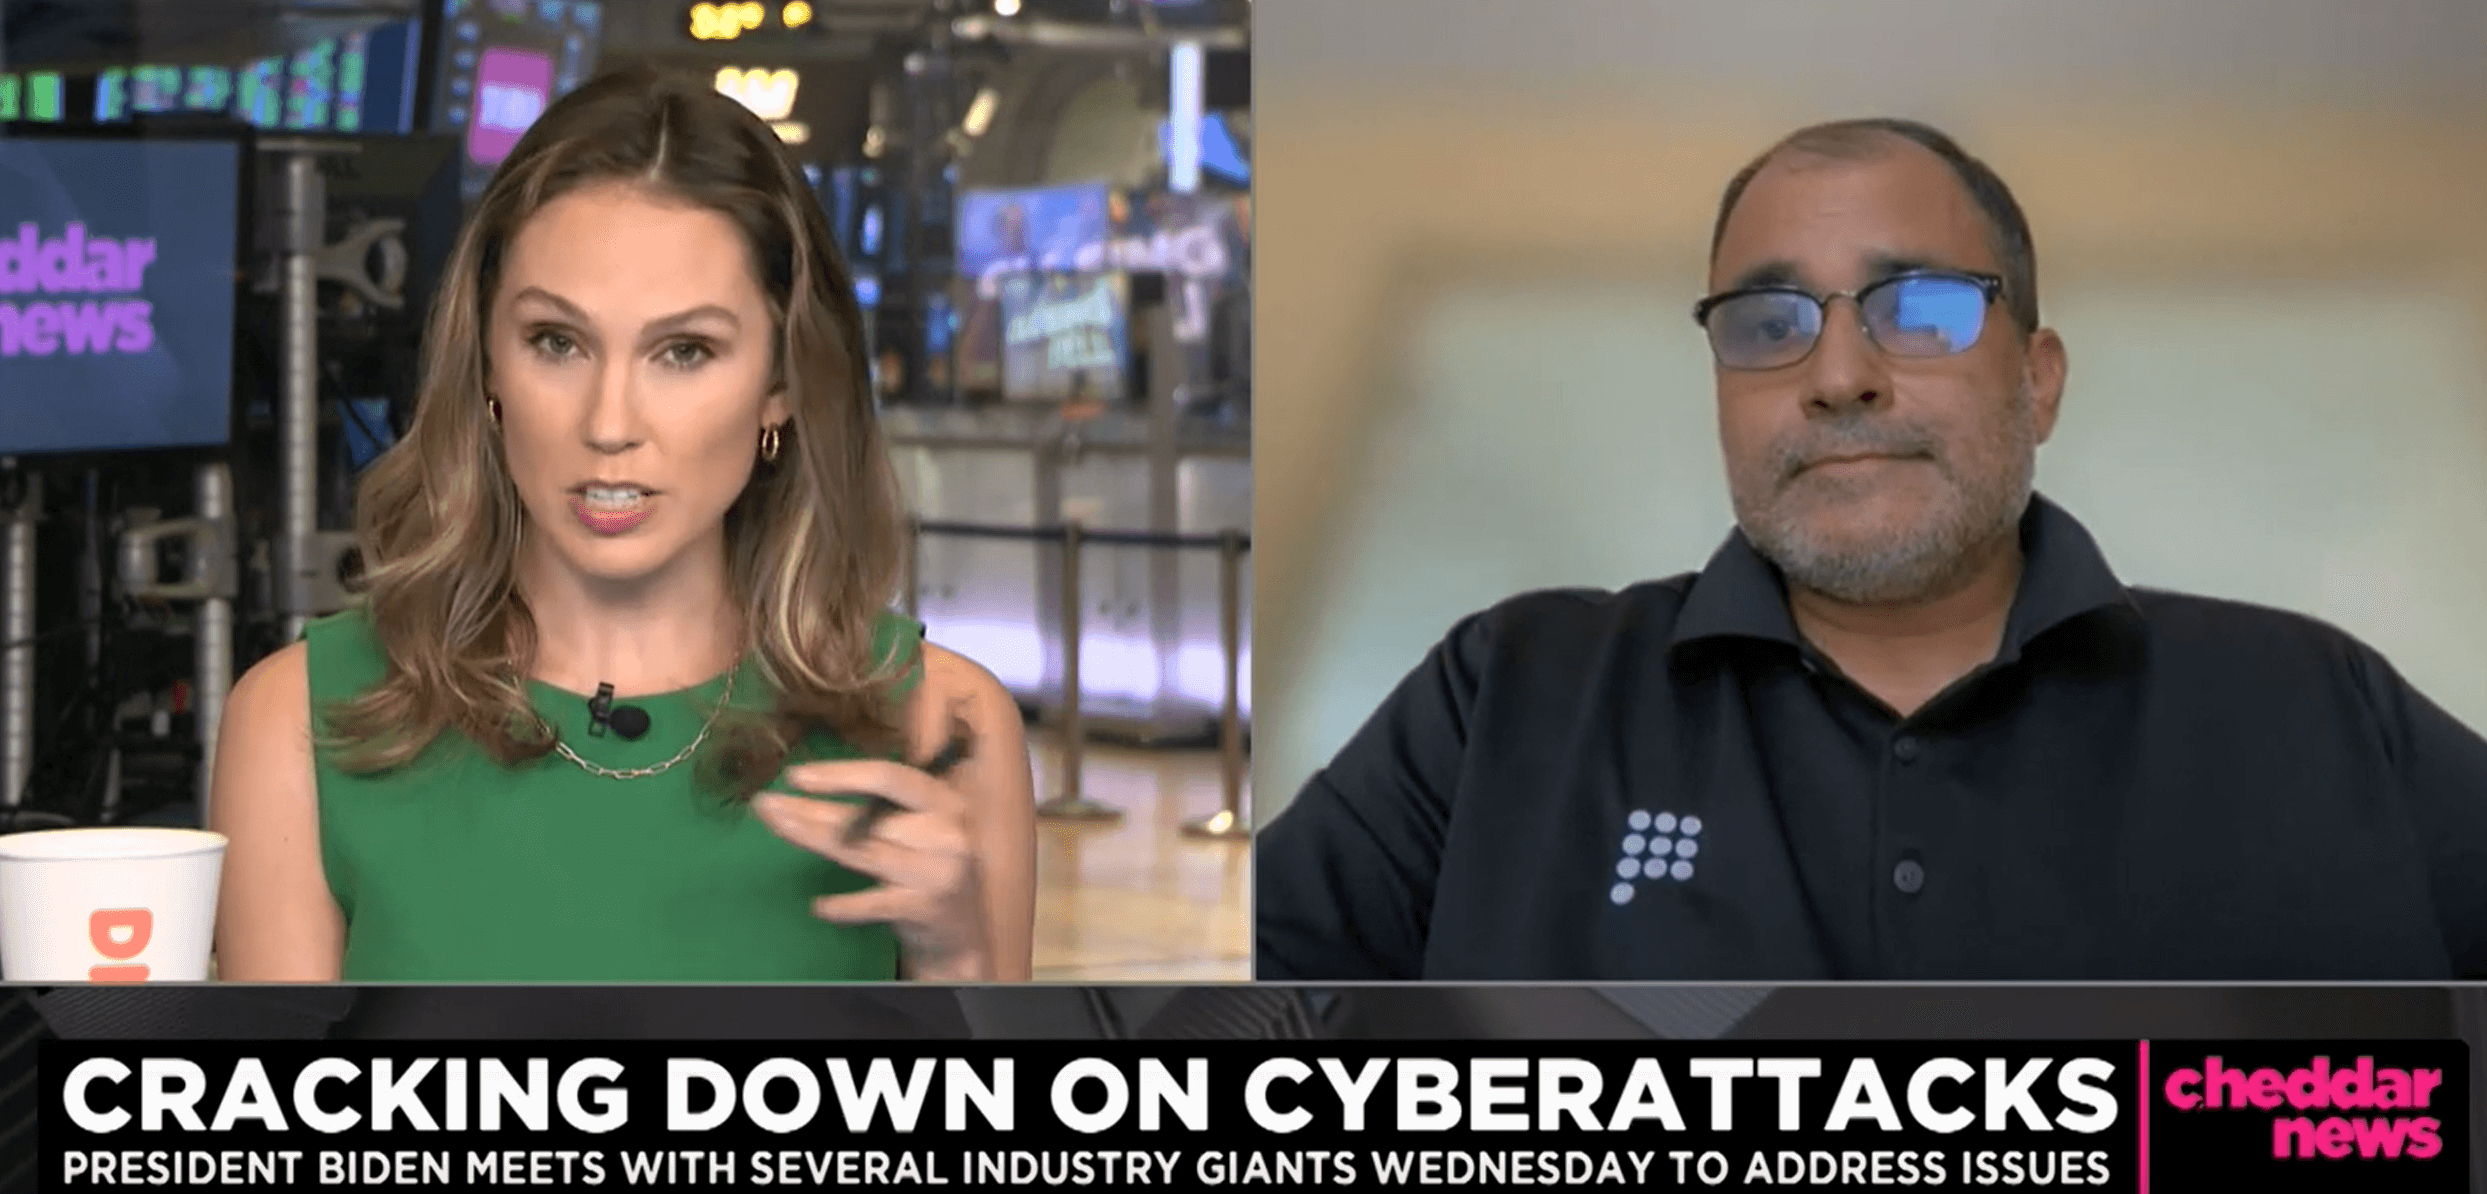 """Prove CEO Rodger Desai on Cheddar News: """"To prevent cyberattacks, it's vital that we work together across industries"""""""